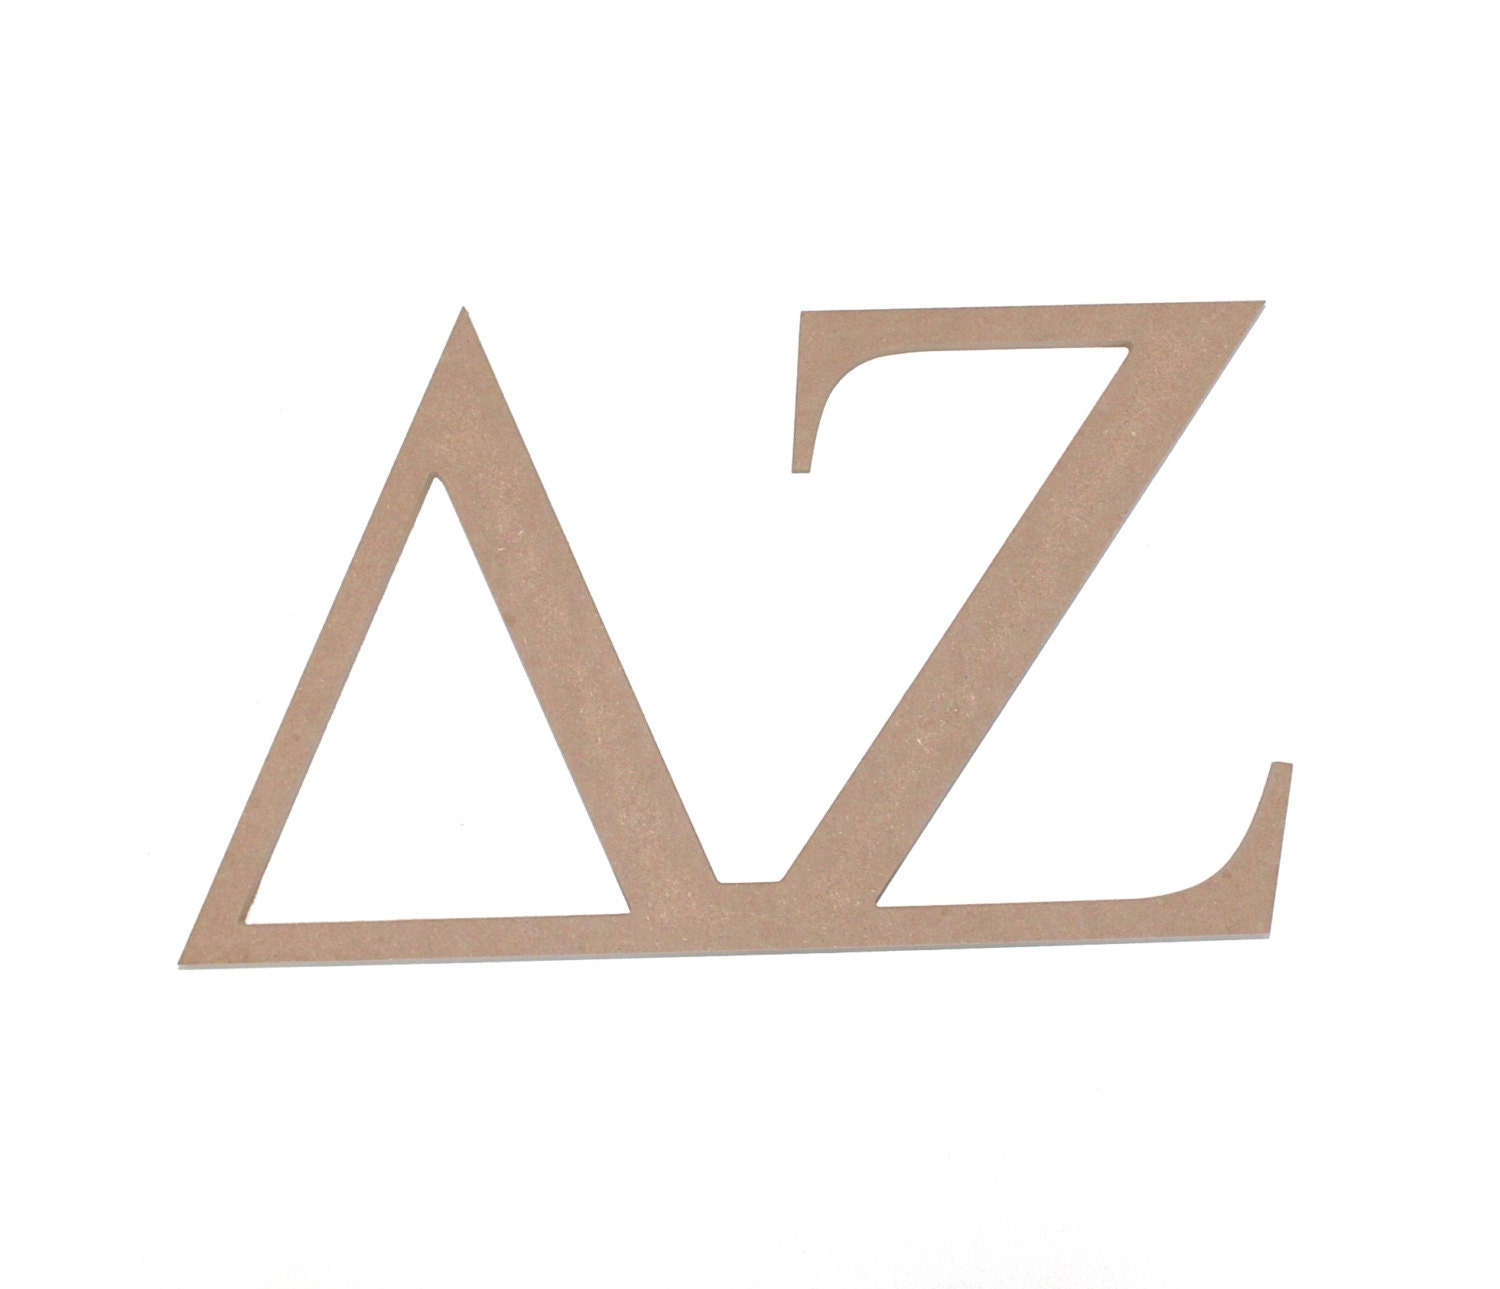 Delta zeta sorority wooden letters paintable by mossijossi for Buy wooden greek letters